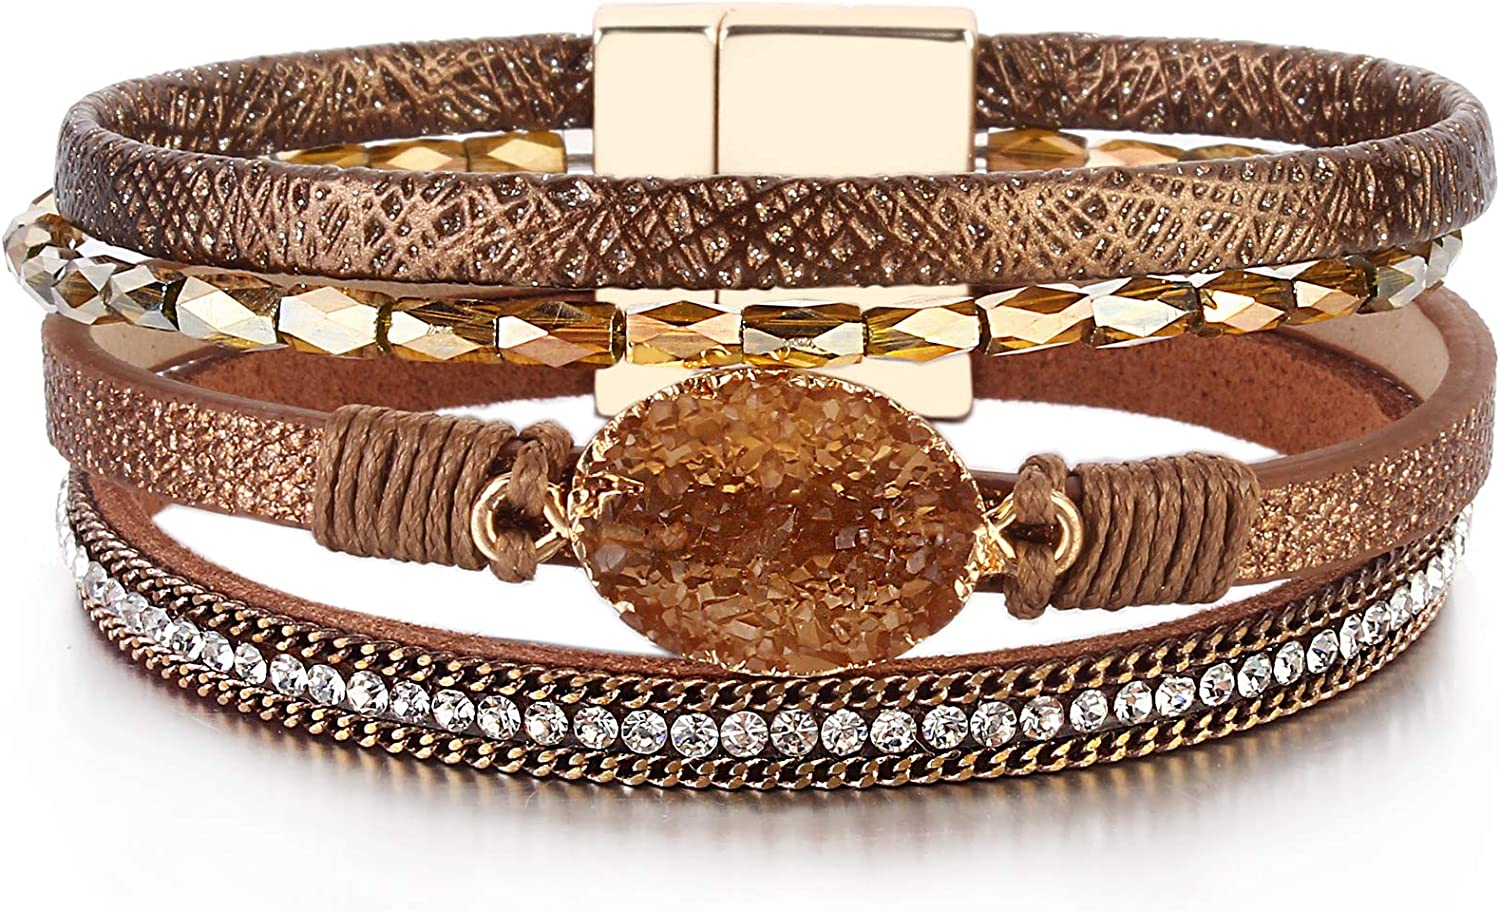 FANCY SHINY Leather Wrap Bracelet Boho Cuff Bracelets Crystal Bead Bracelet with Magnetic Clasp for Women